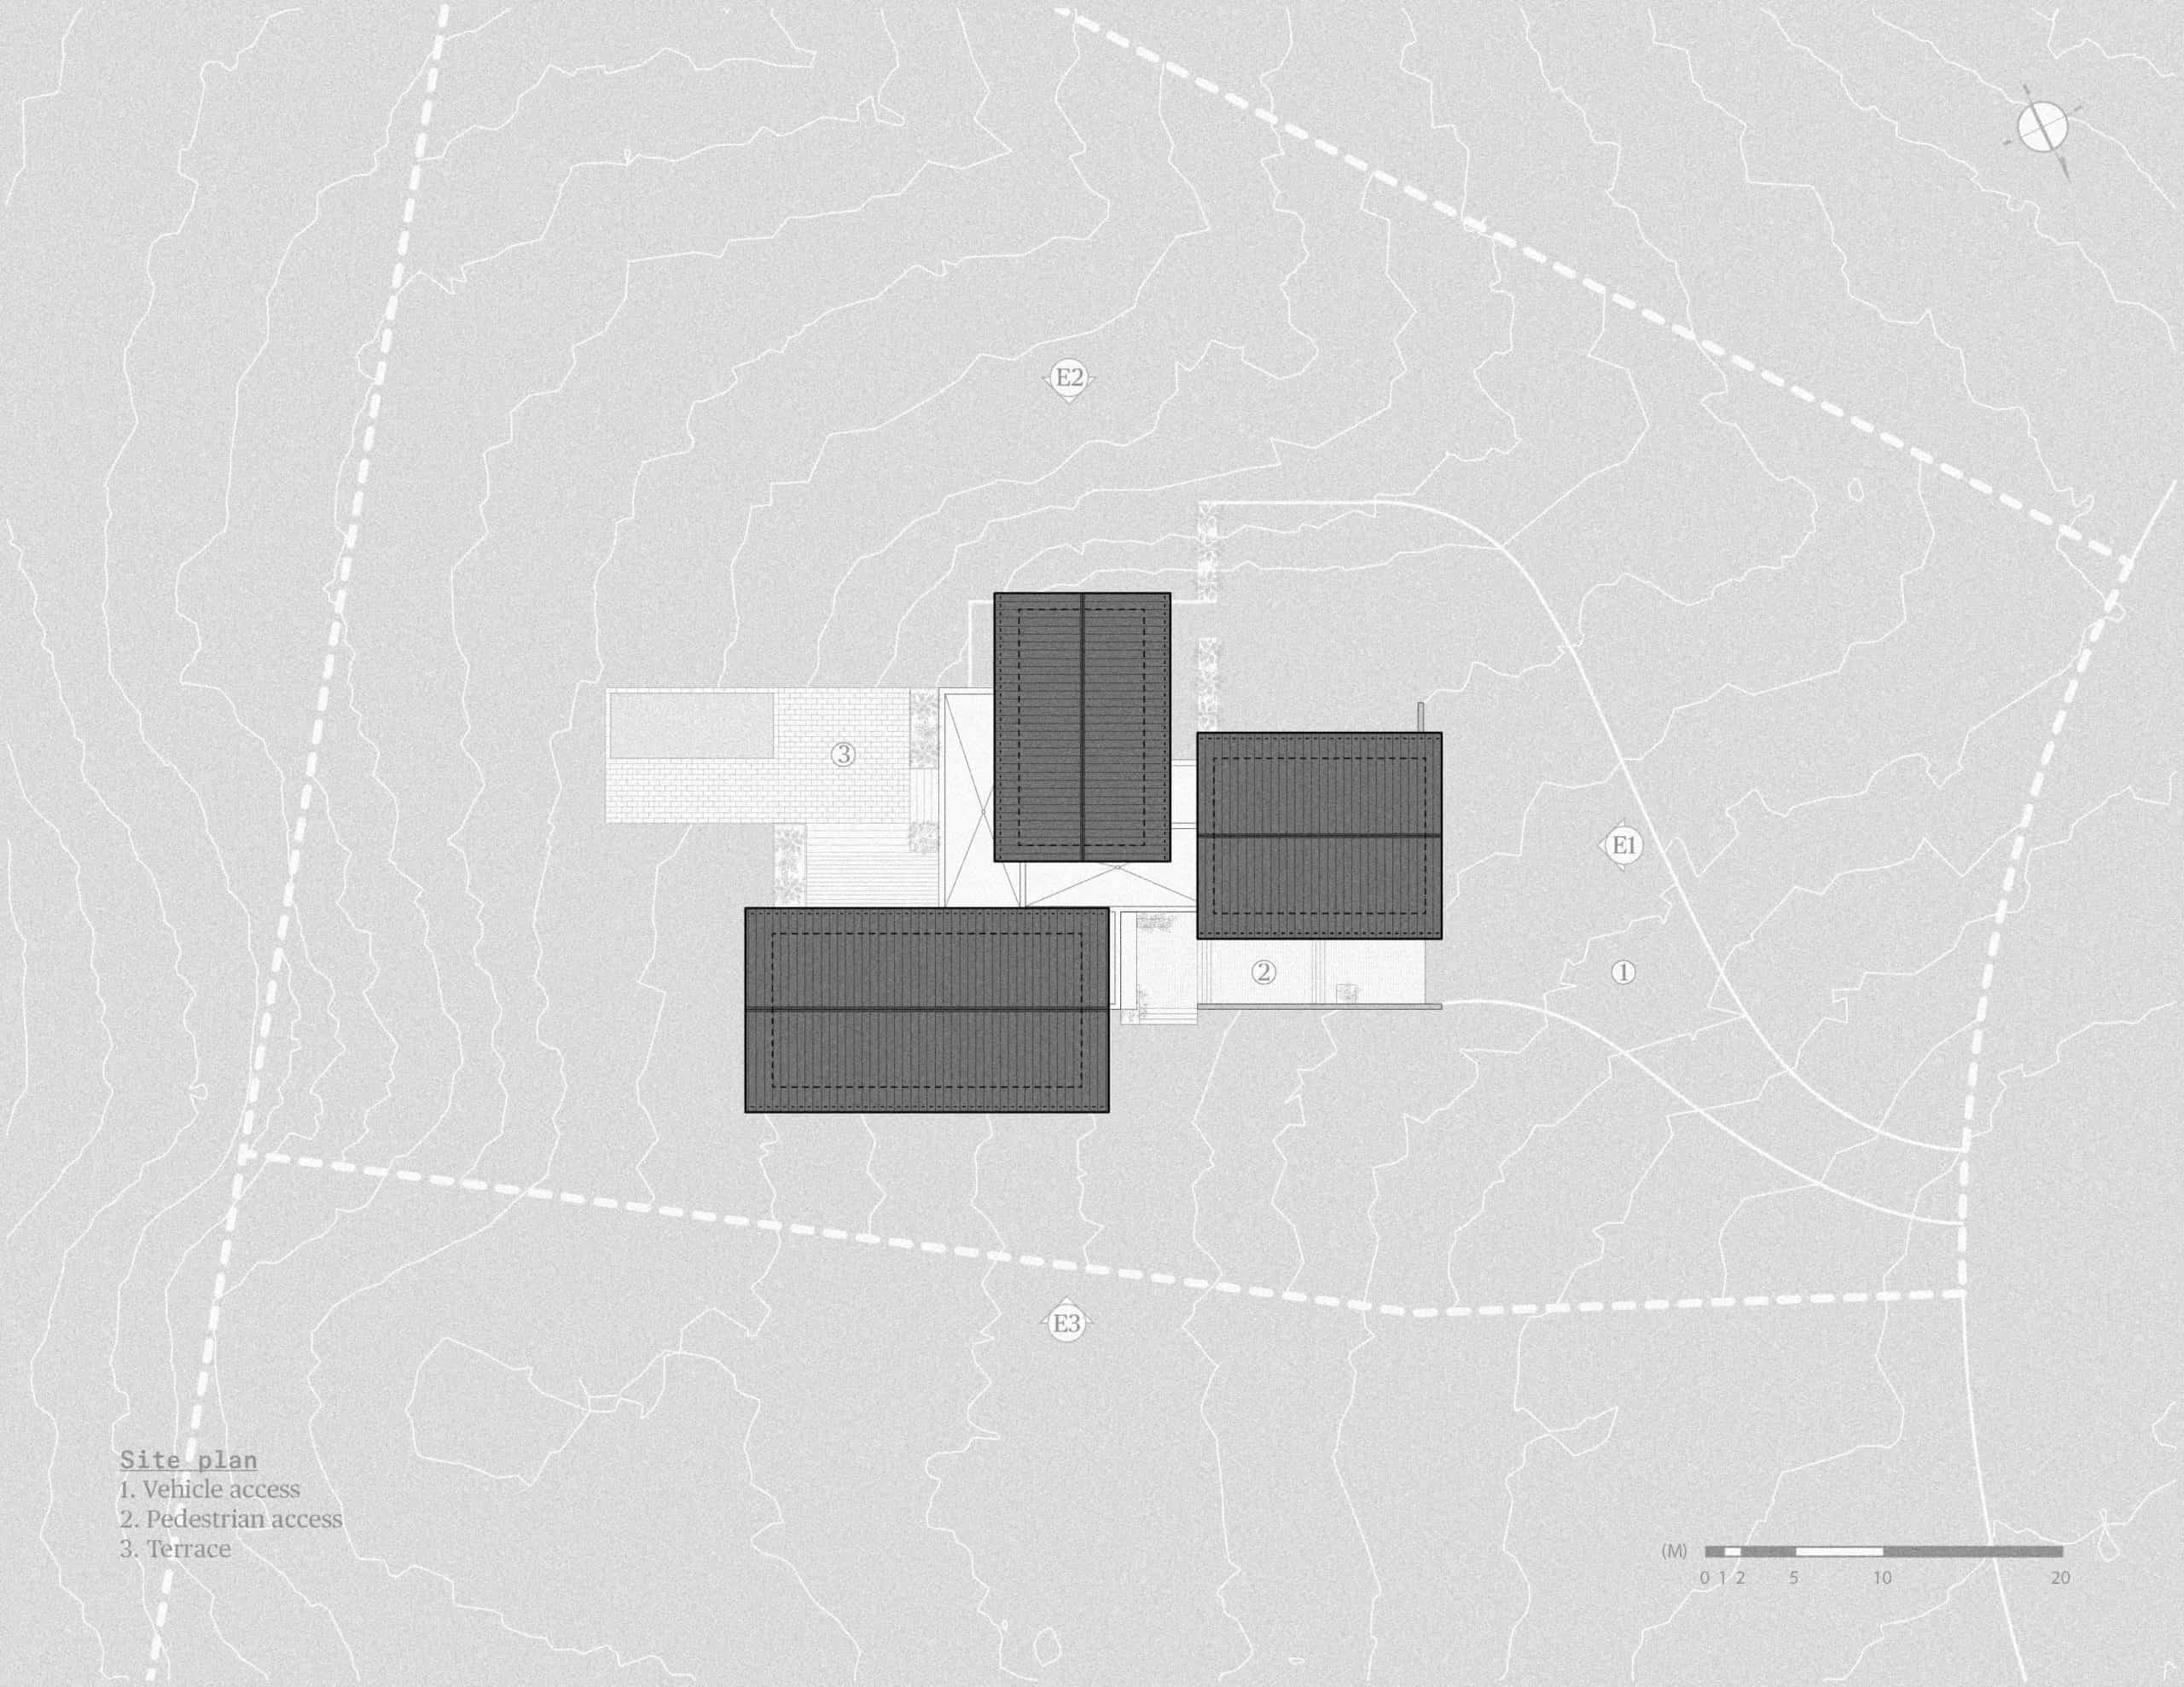 This is an illustrated view of the house and its roof structures and proximity.